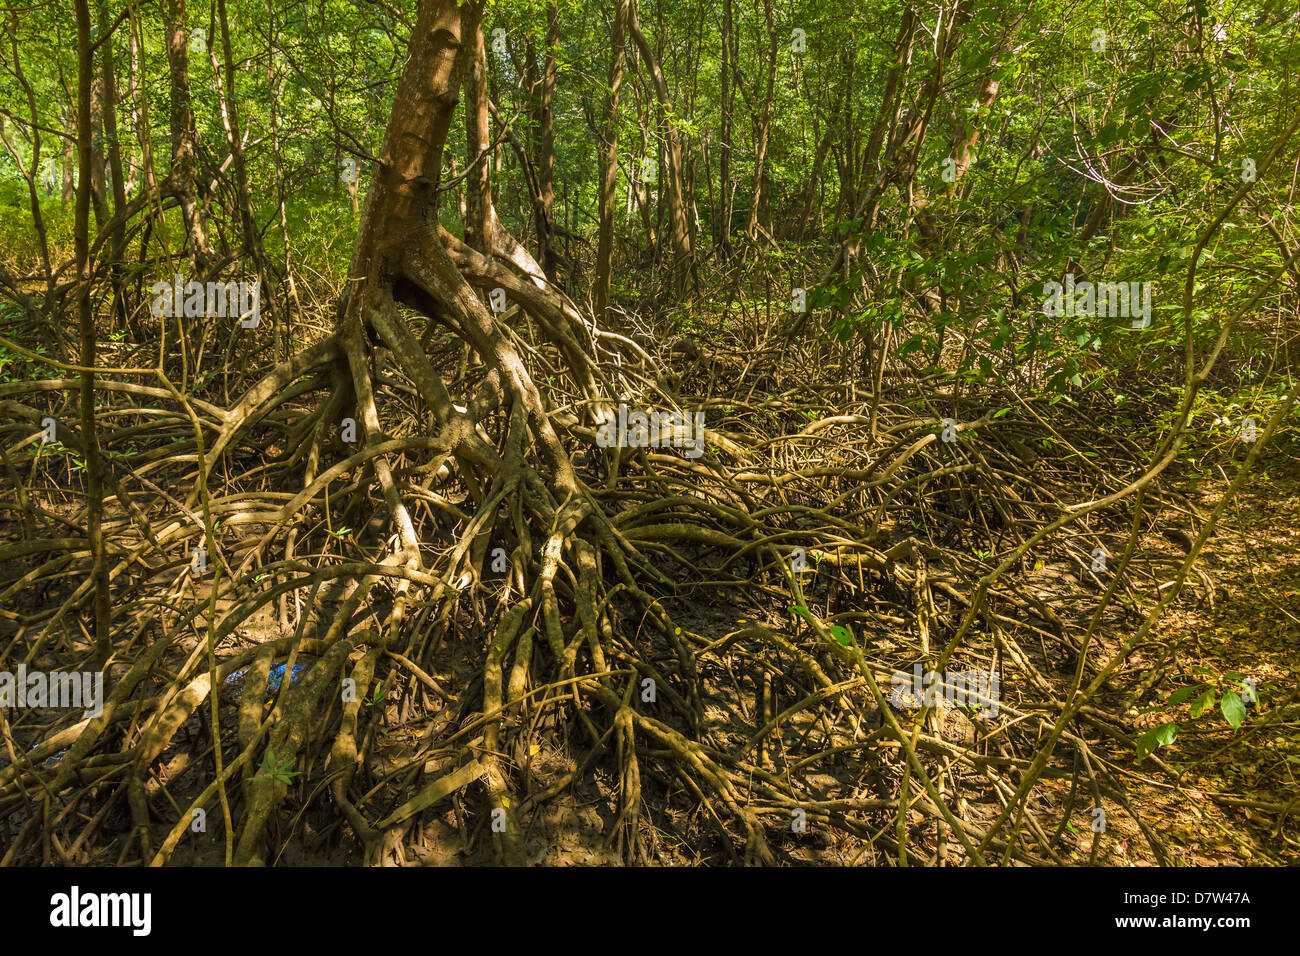 Mangrove forest in the Biological Reserve near the Nosara River mouth; Nosara, Nicoya Peninsula, Guanacaste Province, - Stock Image